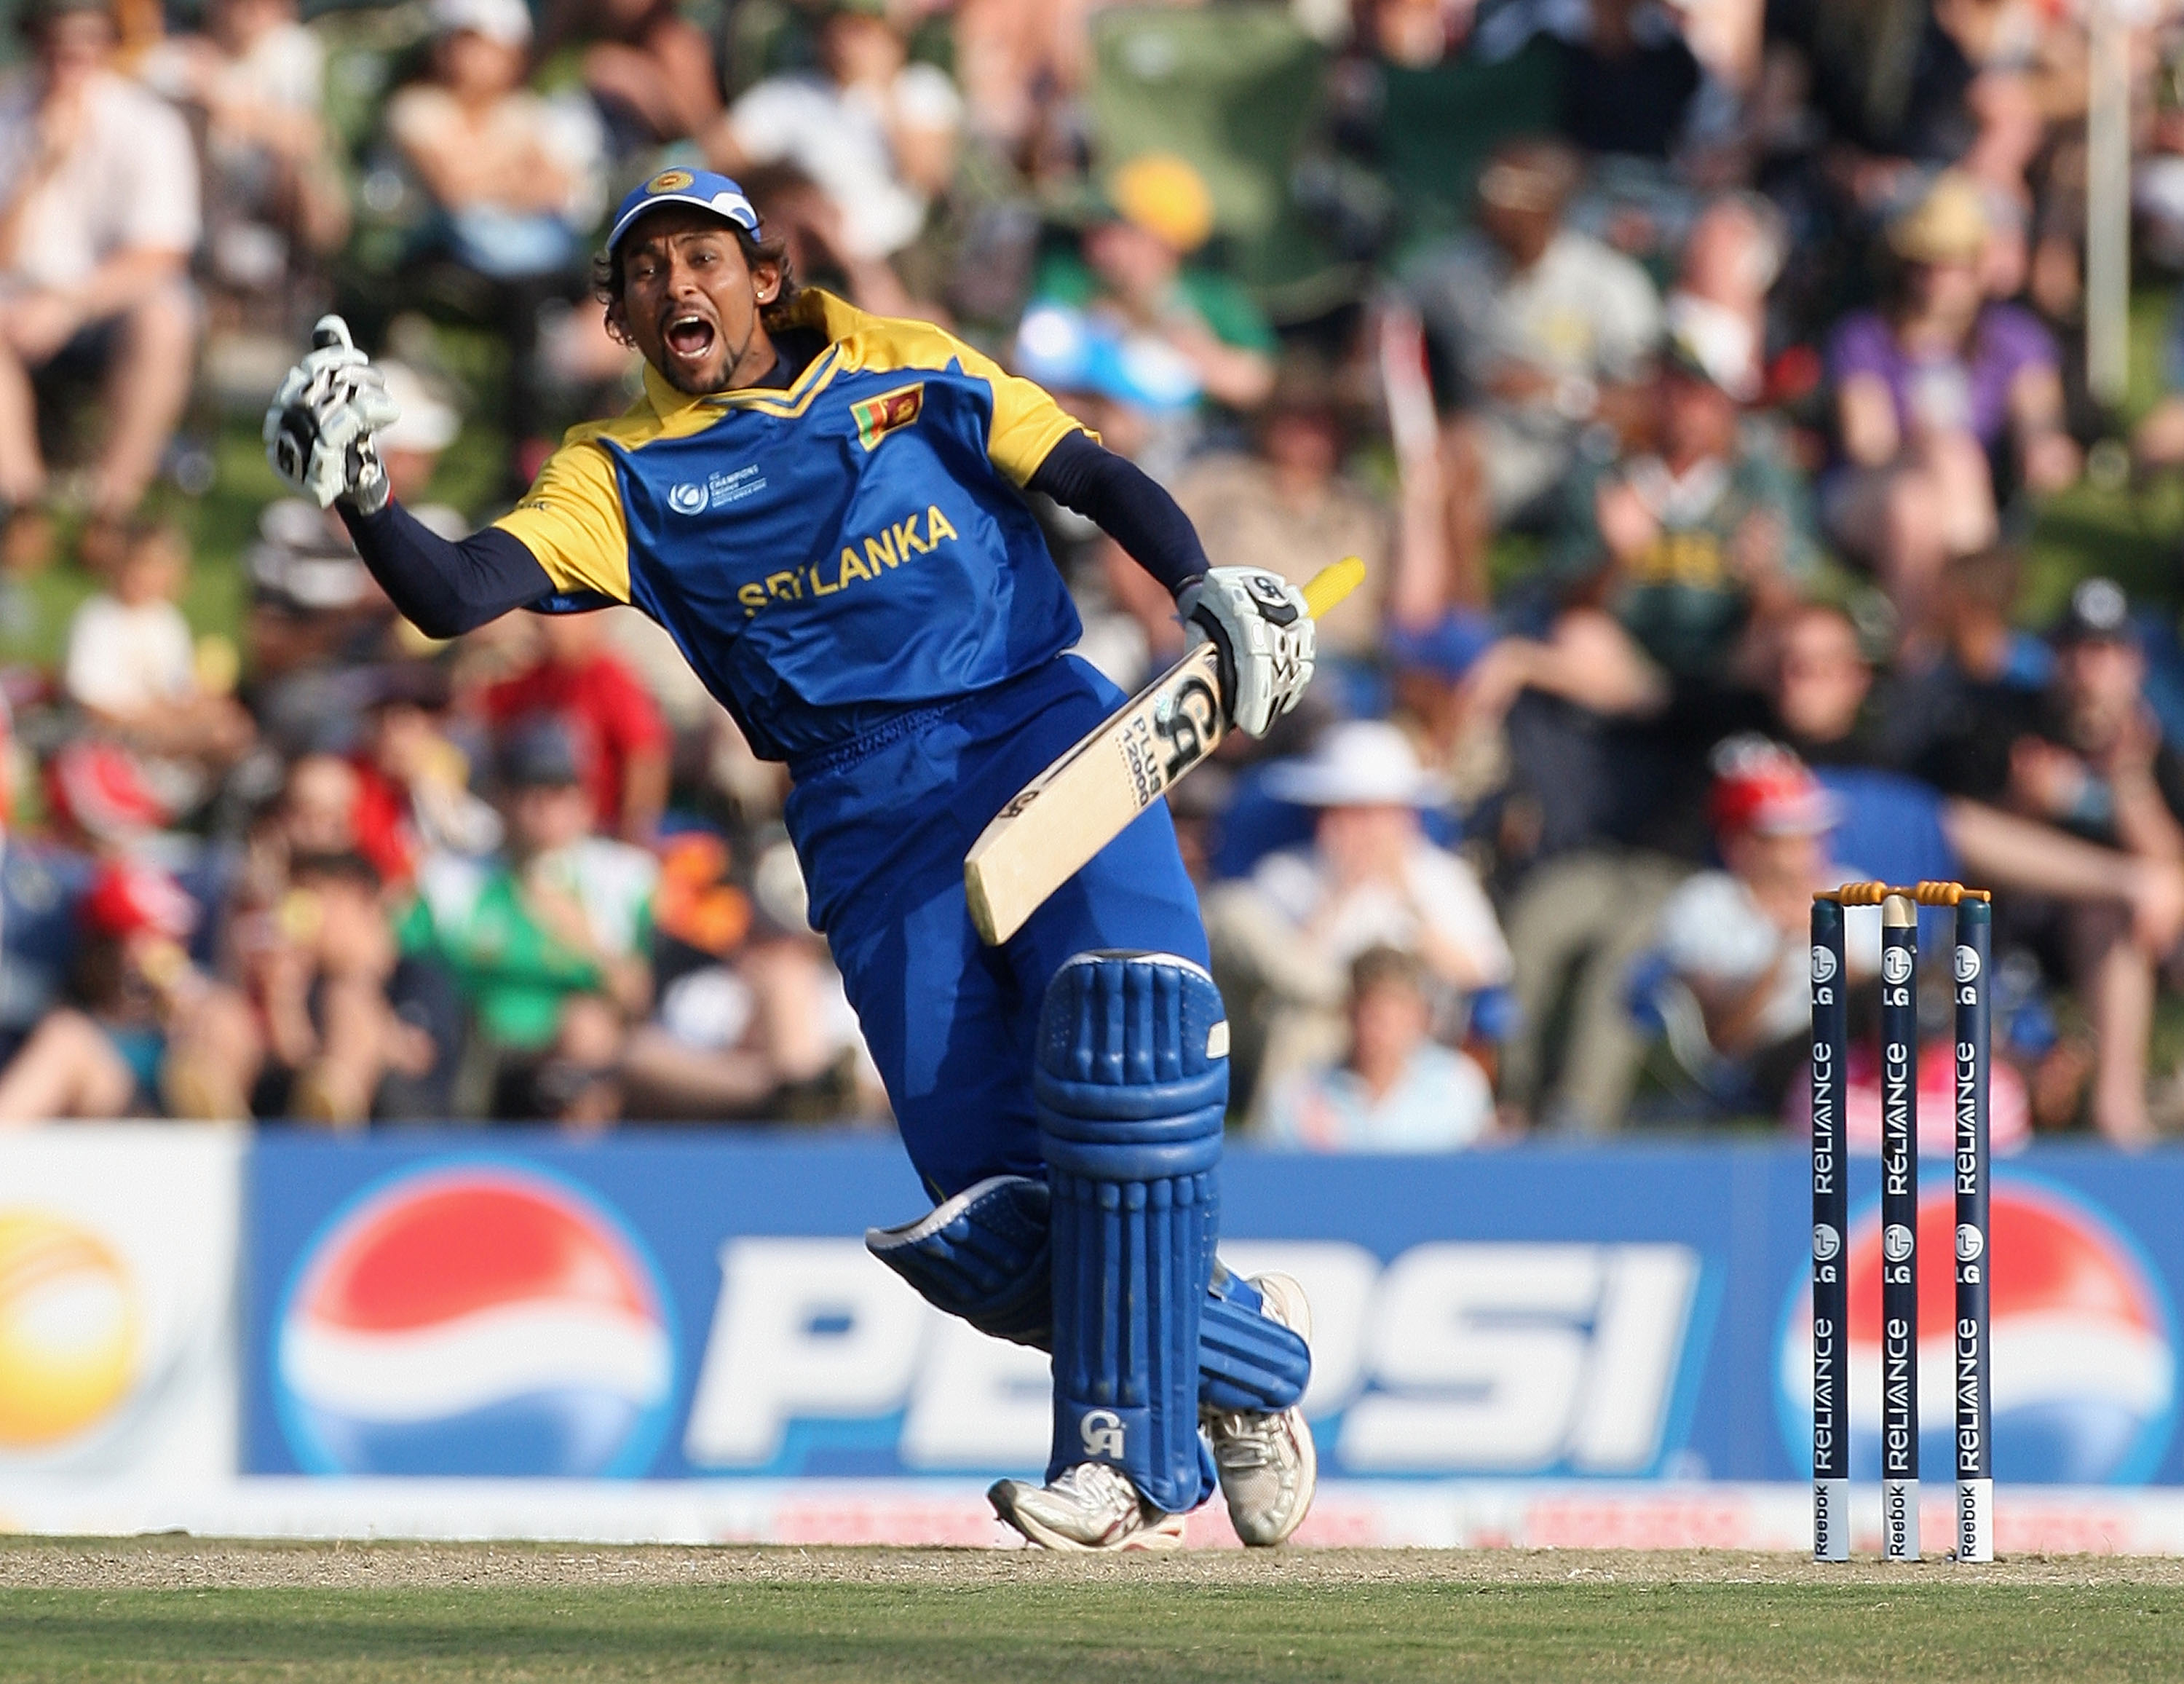 Dilshan scored 39 international tons in his 17-year career // Getty